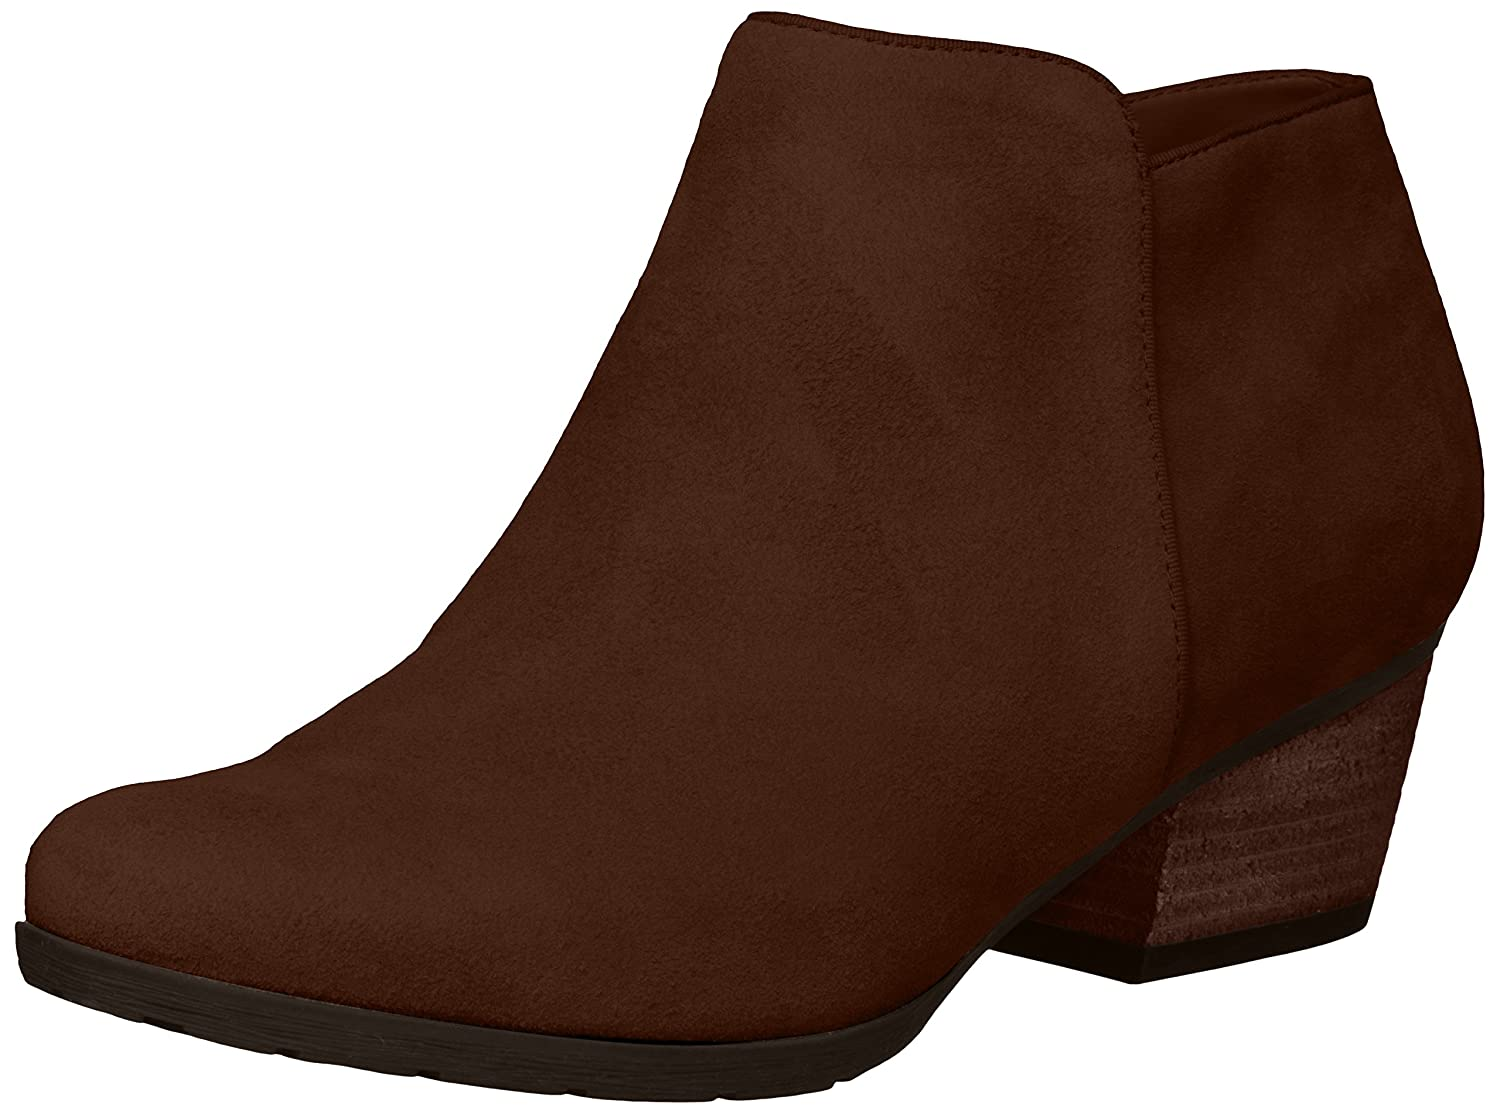 Blondo Women's Villa Ankle Boot B07BQFTSDS 7.5 B(M) US|Chestnut Suede